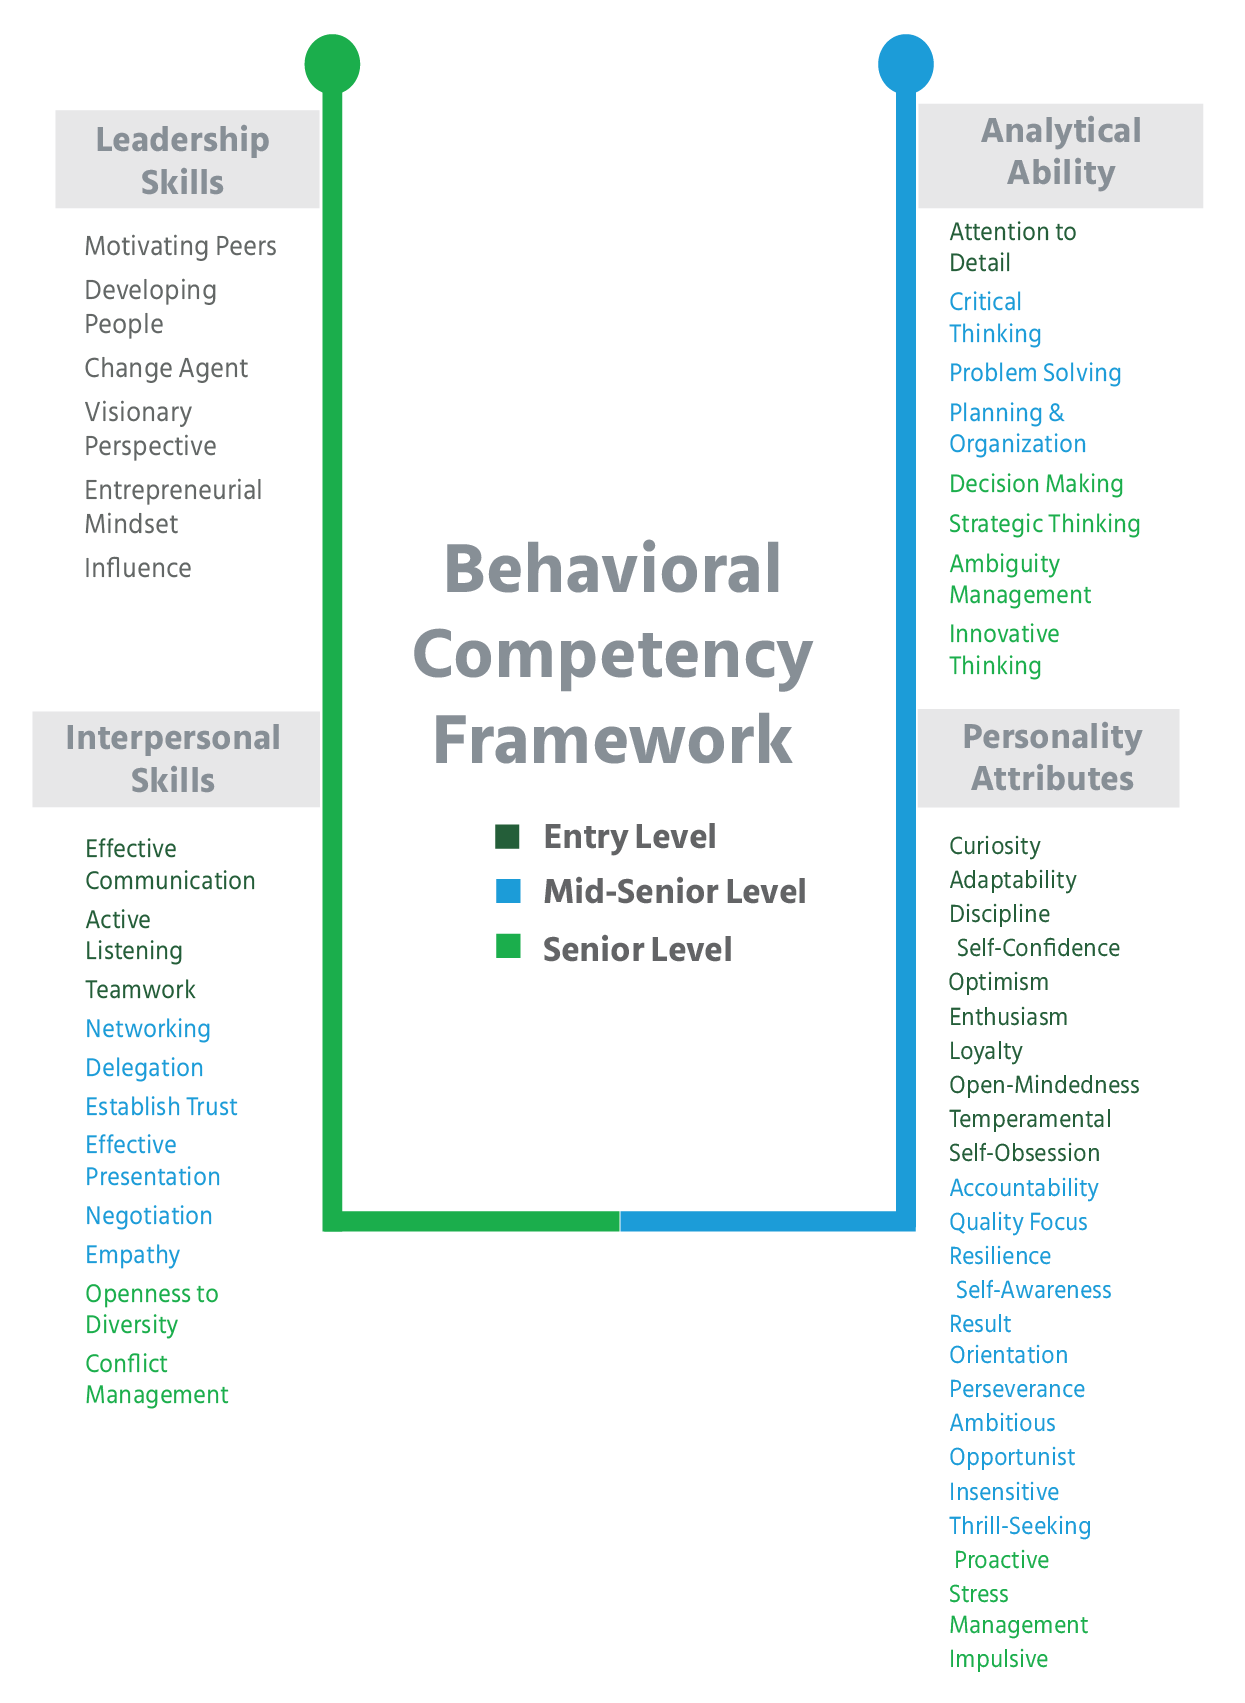 Behavioral_Competency_Framework_behavioral_competencies_test